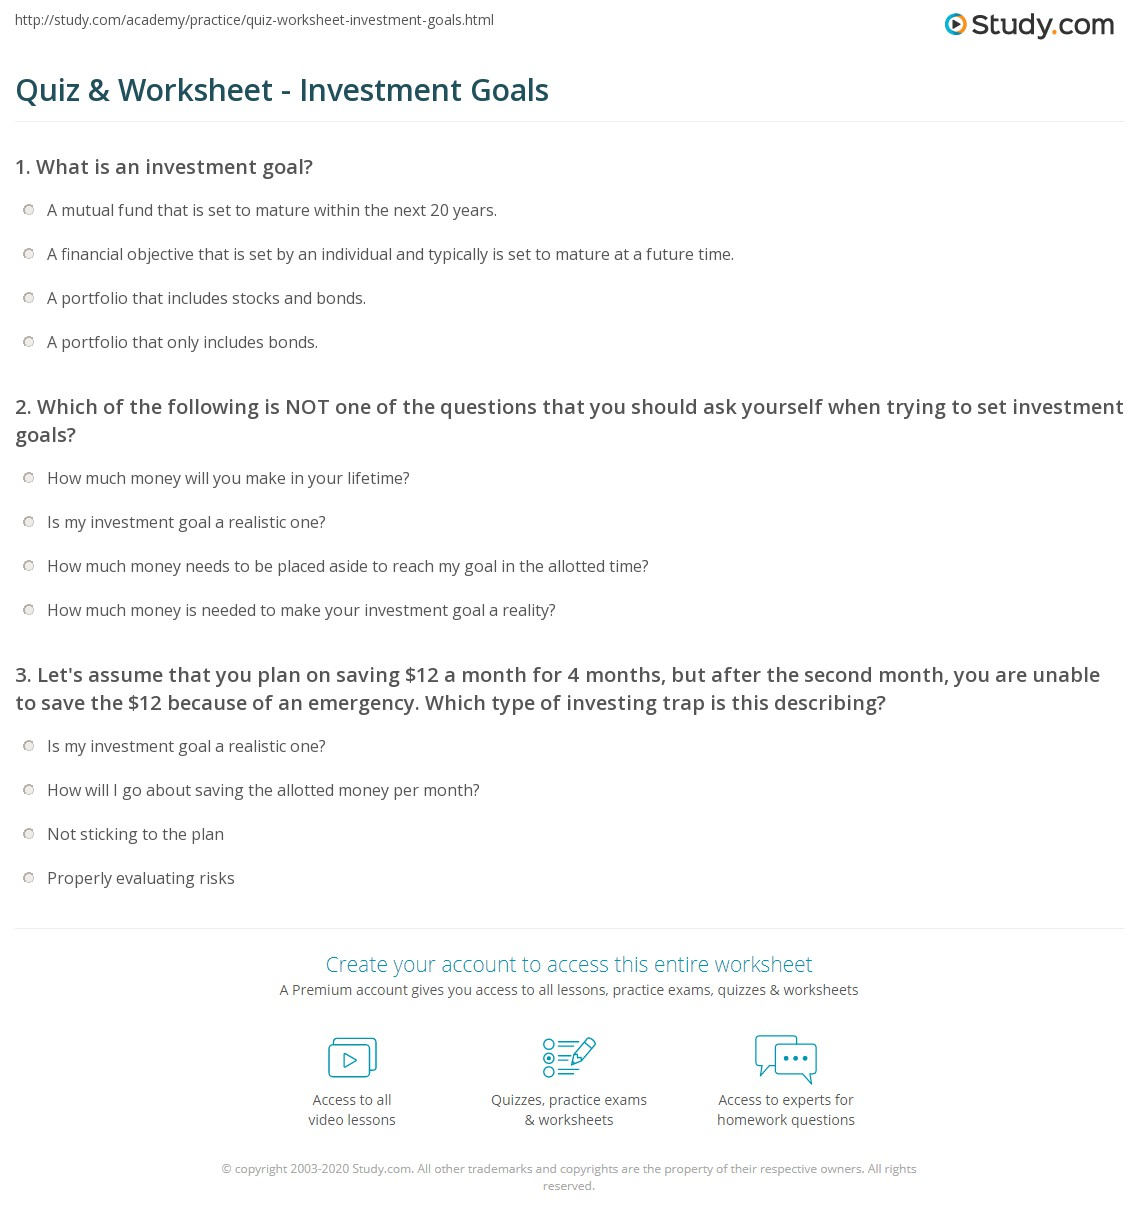 Investor questionnaire—Introduction